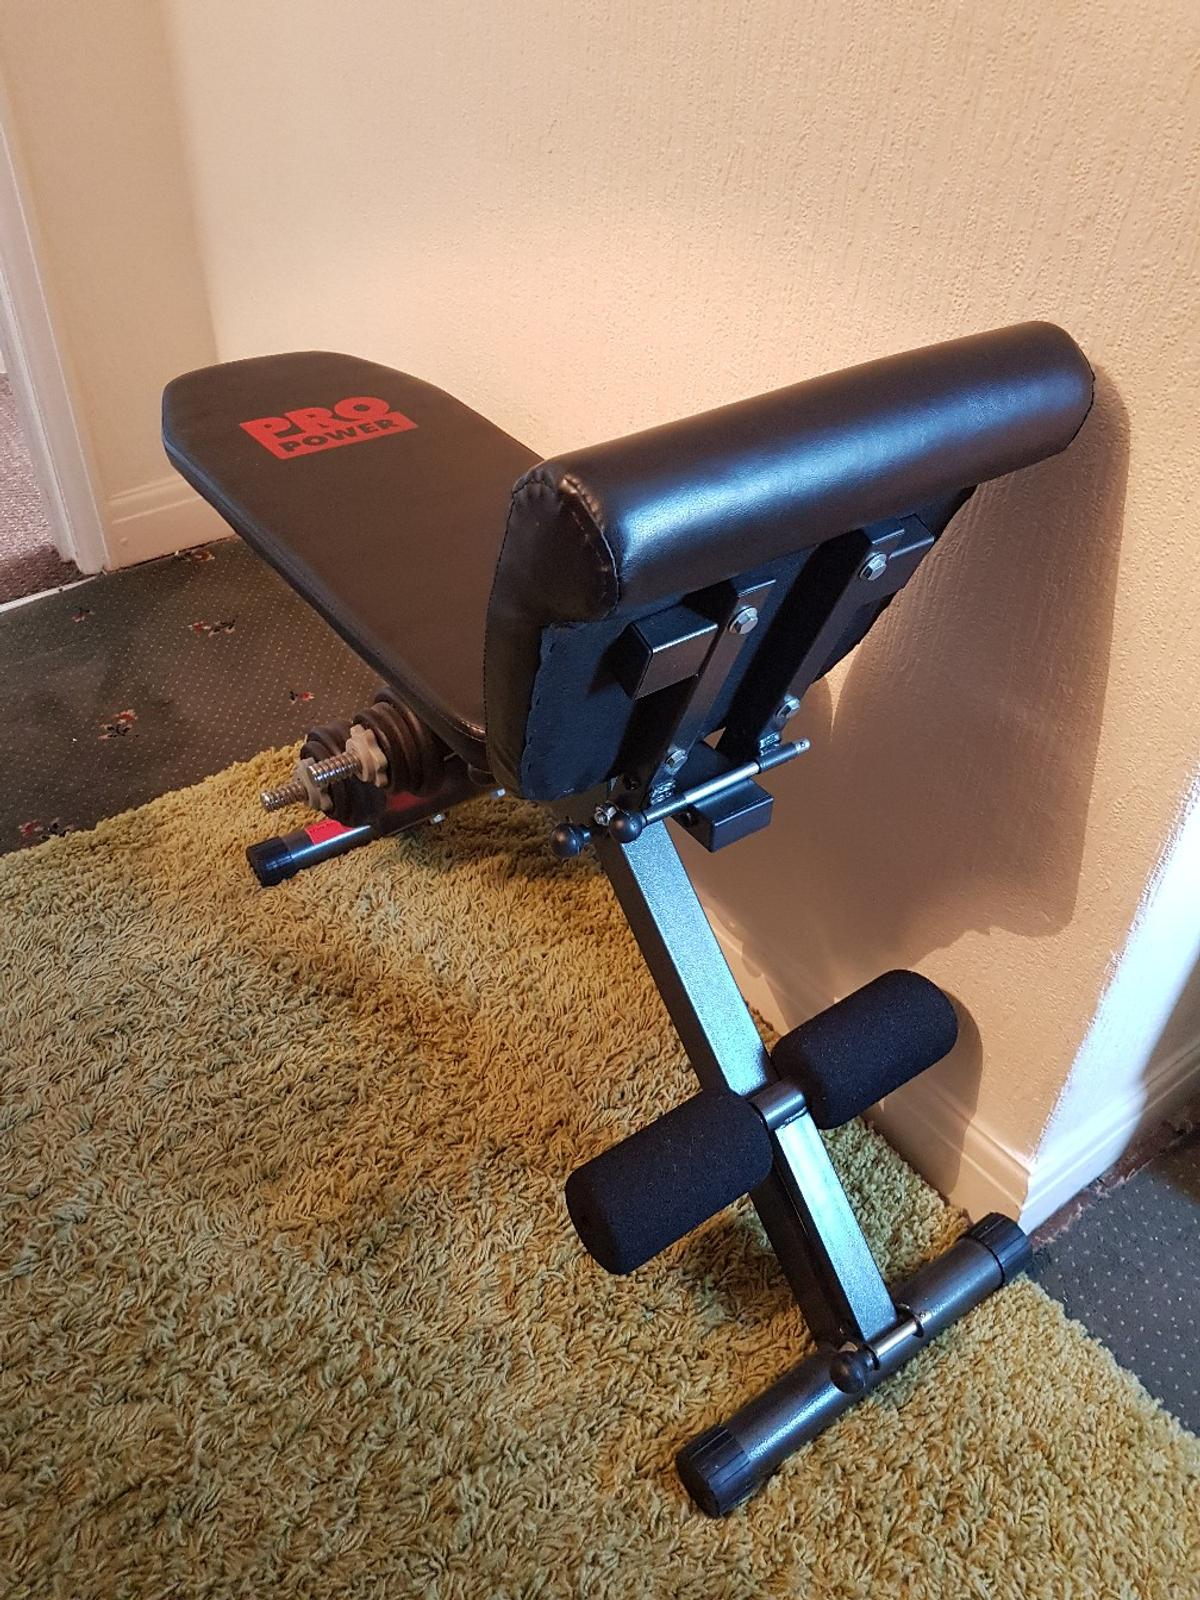 NOT REALLY BEEN USED ..IT SUPERB CONDITION...I WANT AT LEAST £50 REMEMBER ITS ALSO GOT A PAIR OF TOP QUALITY DUMB BELLS ... THE DUMBELL WEIGHTS ARE ..2X 1.25 KG PLUS ..1X 0.5 KG ....THAT ON ONE SIDE SO ..ITS THAT X 2 ....IF YOU UNFERSTAND ...WITH THE BENCH ..THE BENCH LAYS BACK. IF NEEDED ....GRAB A BARGAIN....ITS COLLECTION FROM WF33EU AND CASH ONLY ON COLLECTION PLEASE LOOK AT MY OTHER ITEMS ON MY SITE...